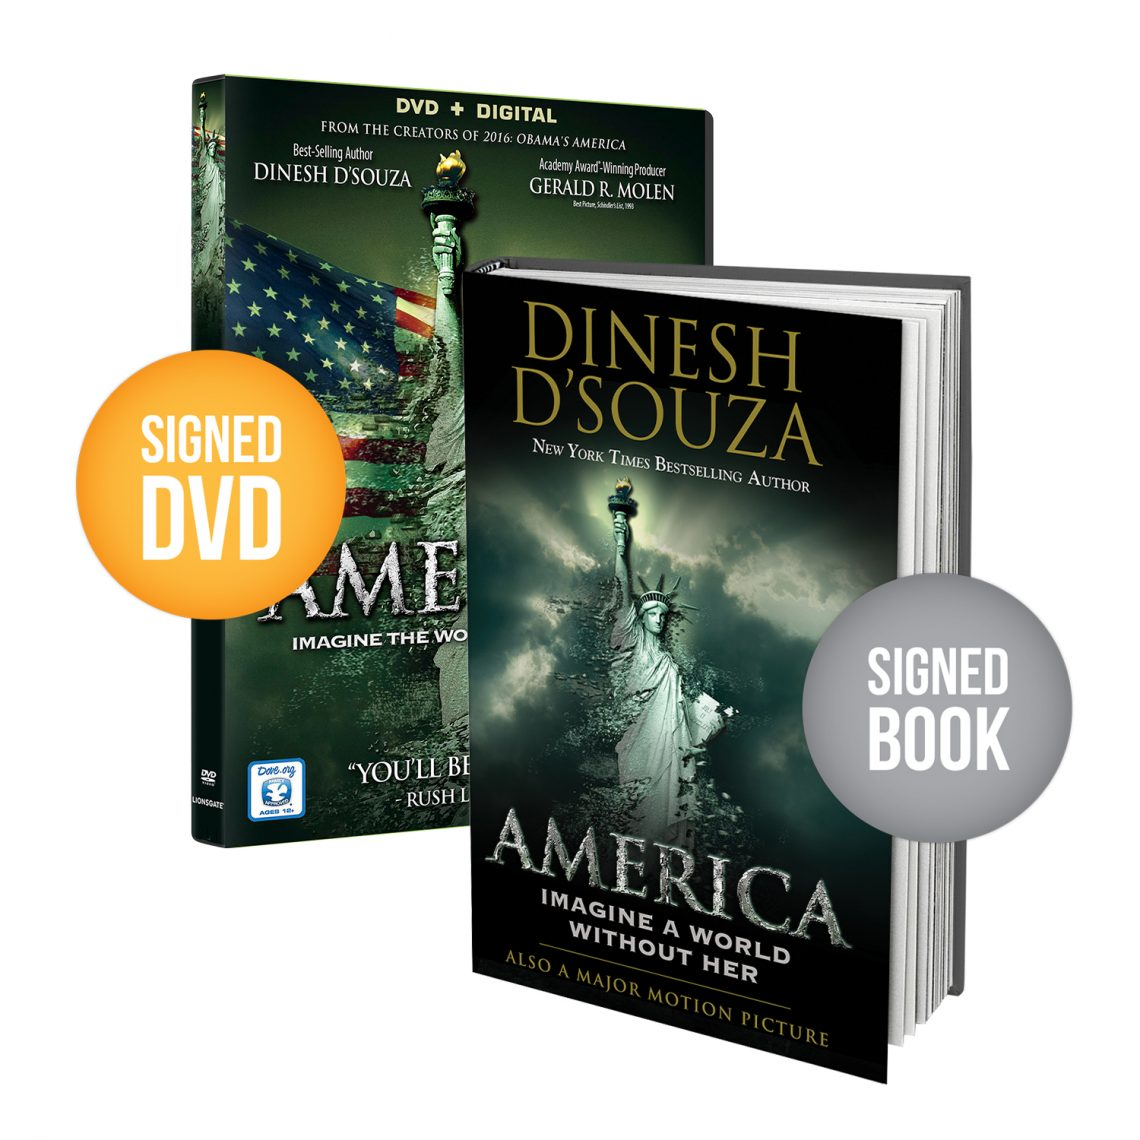 signed-america-book-signed-america-dvd